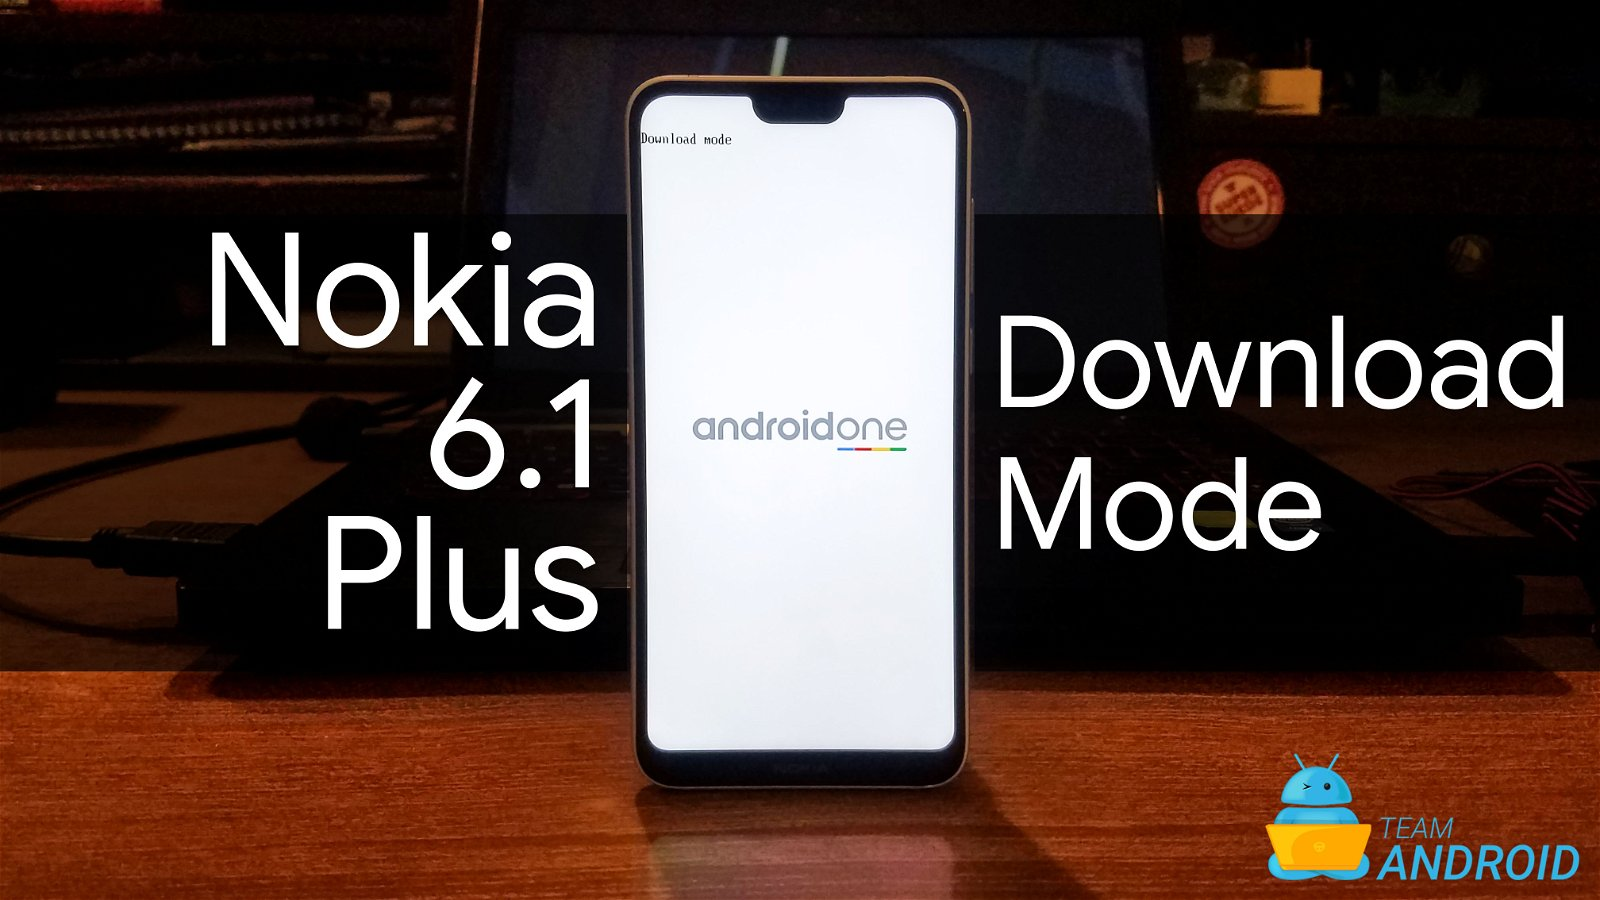 Enter Fastboot Mode on Nokia 6 1 Plus [How To] - Tutorial / Guide